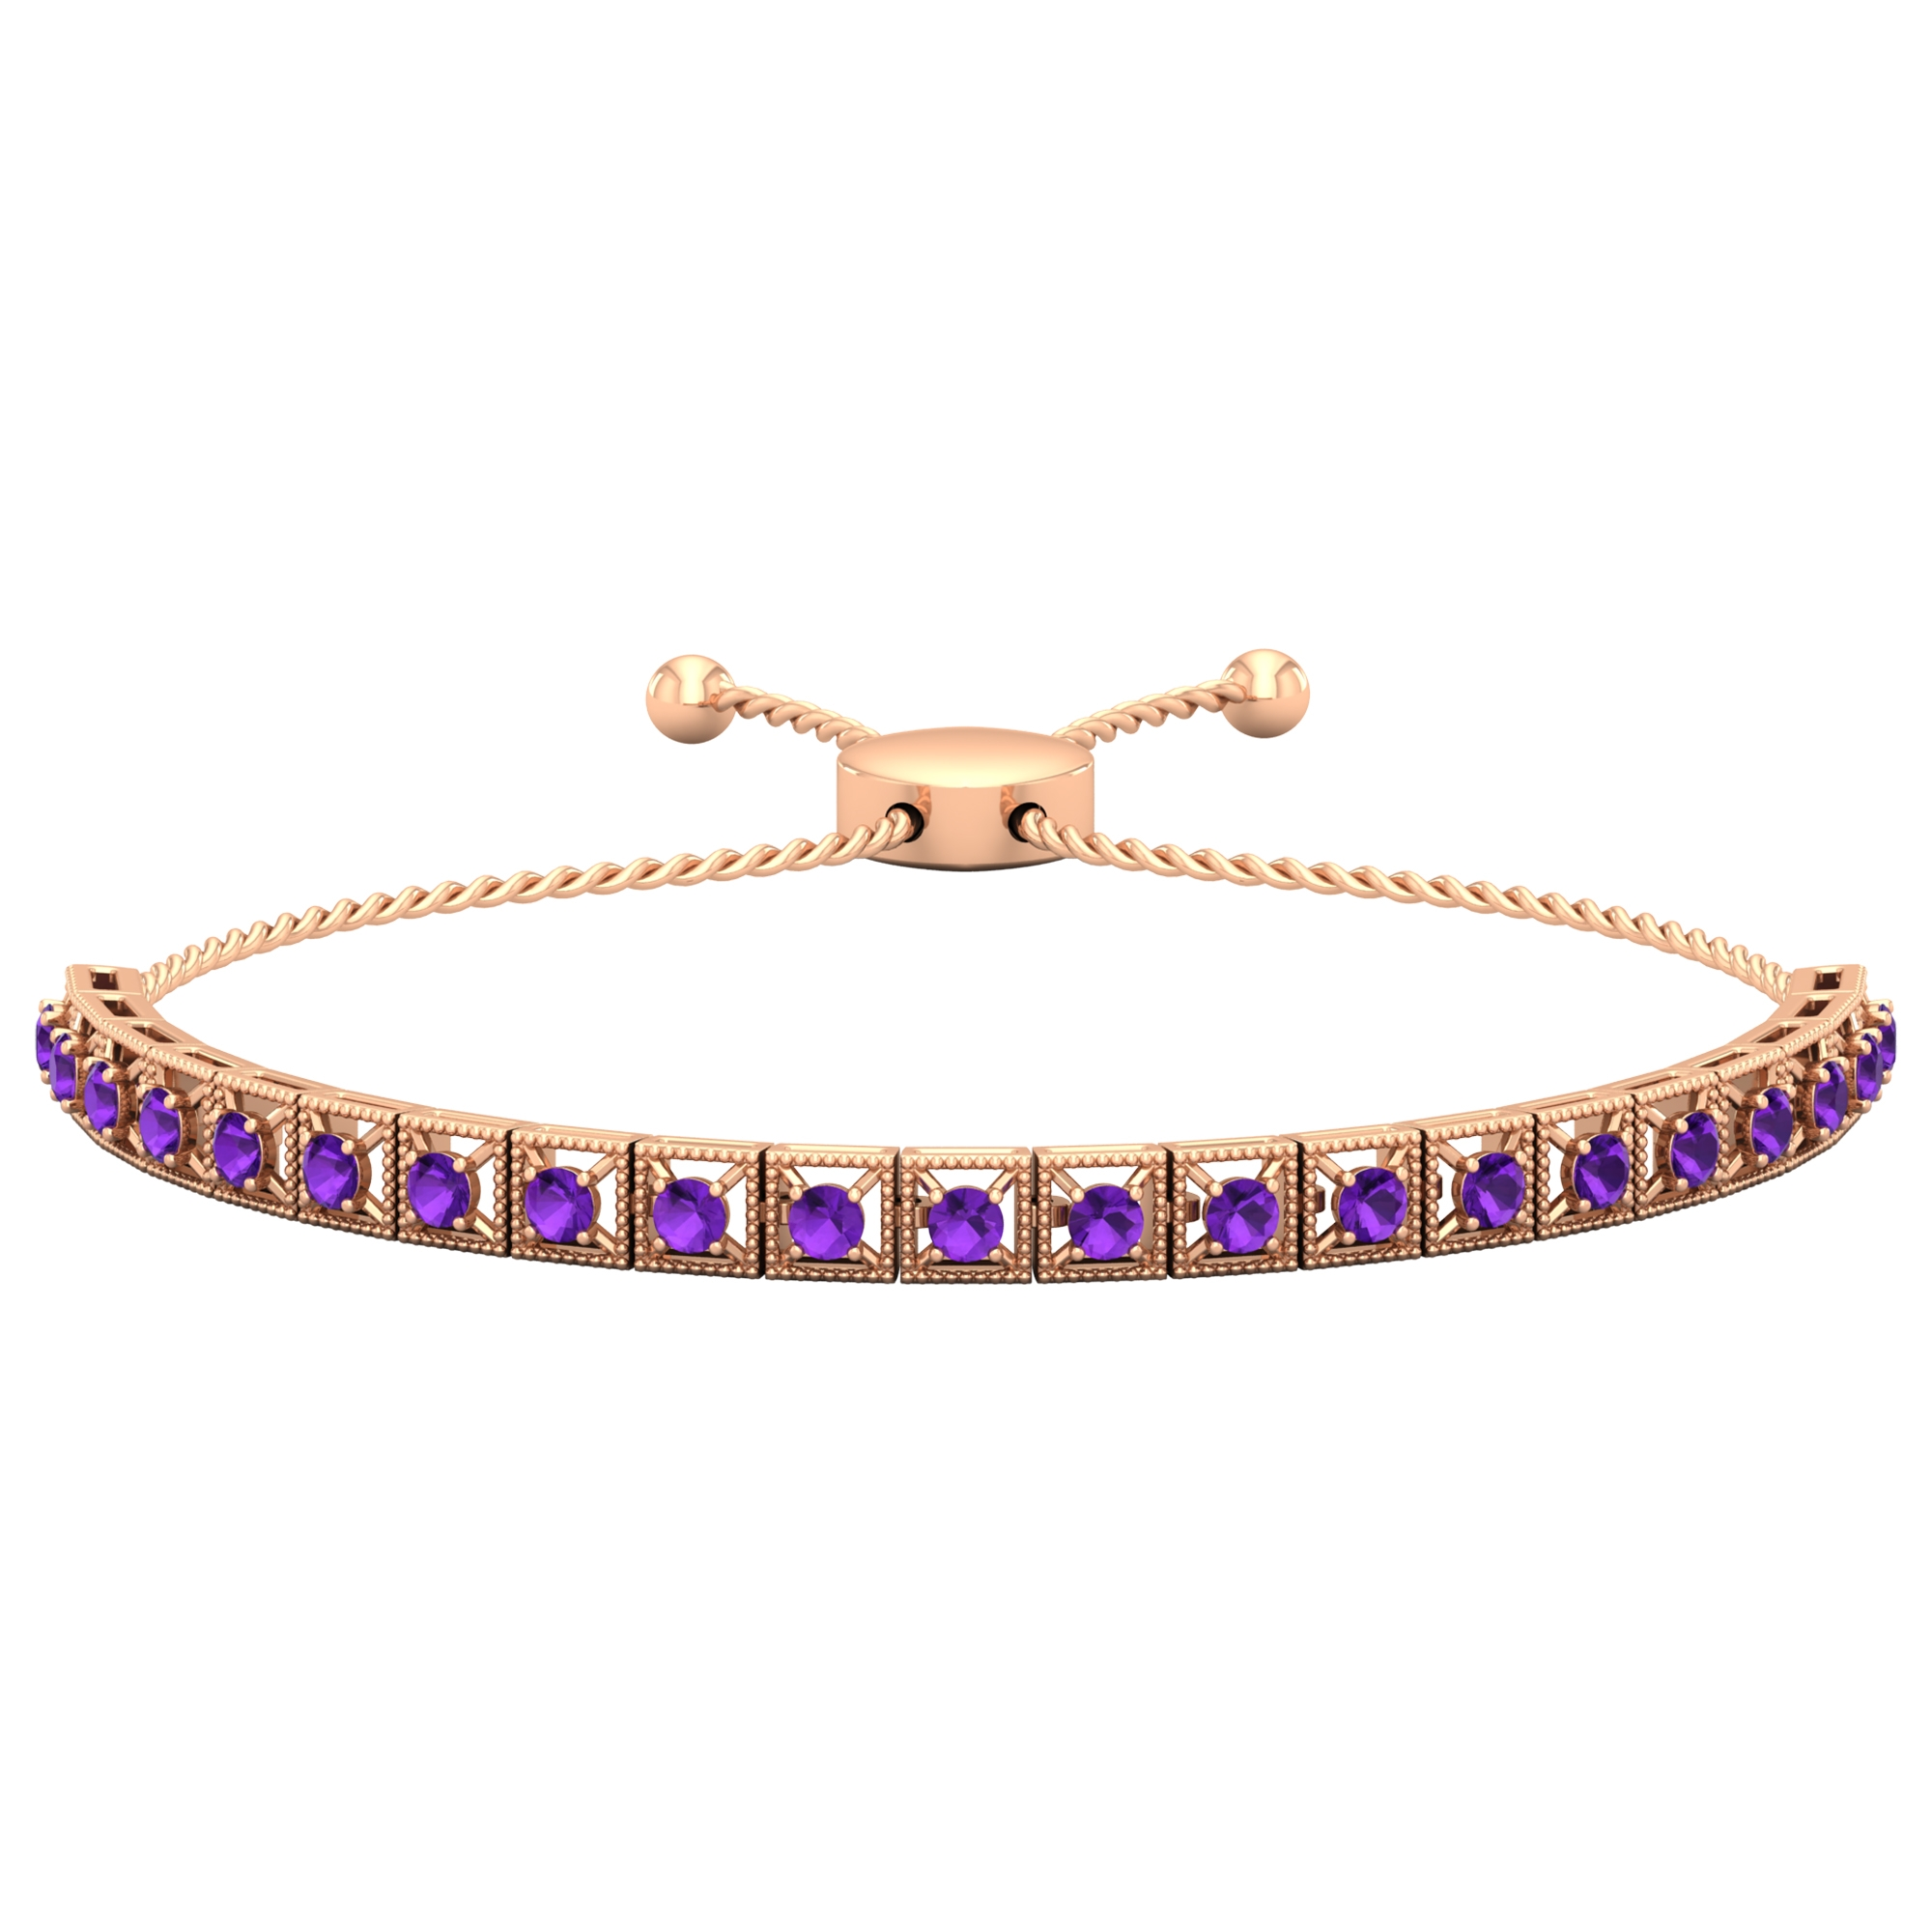 1.50 CT Amethyst Rope Chain Tennis Bolo Bracelet with Gold Milgrain Detailing